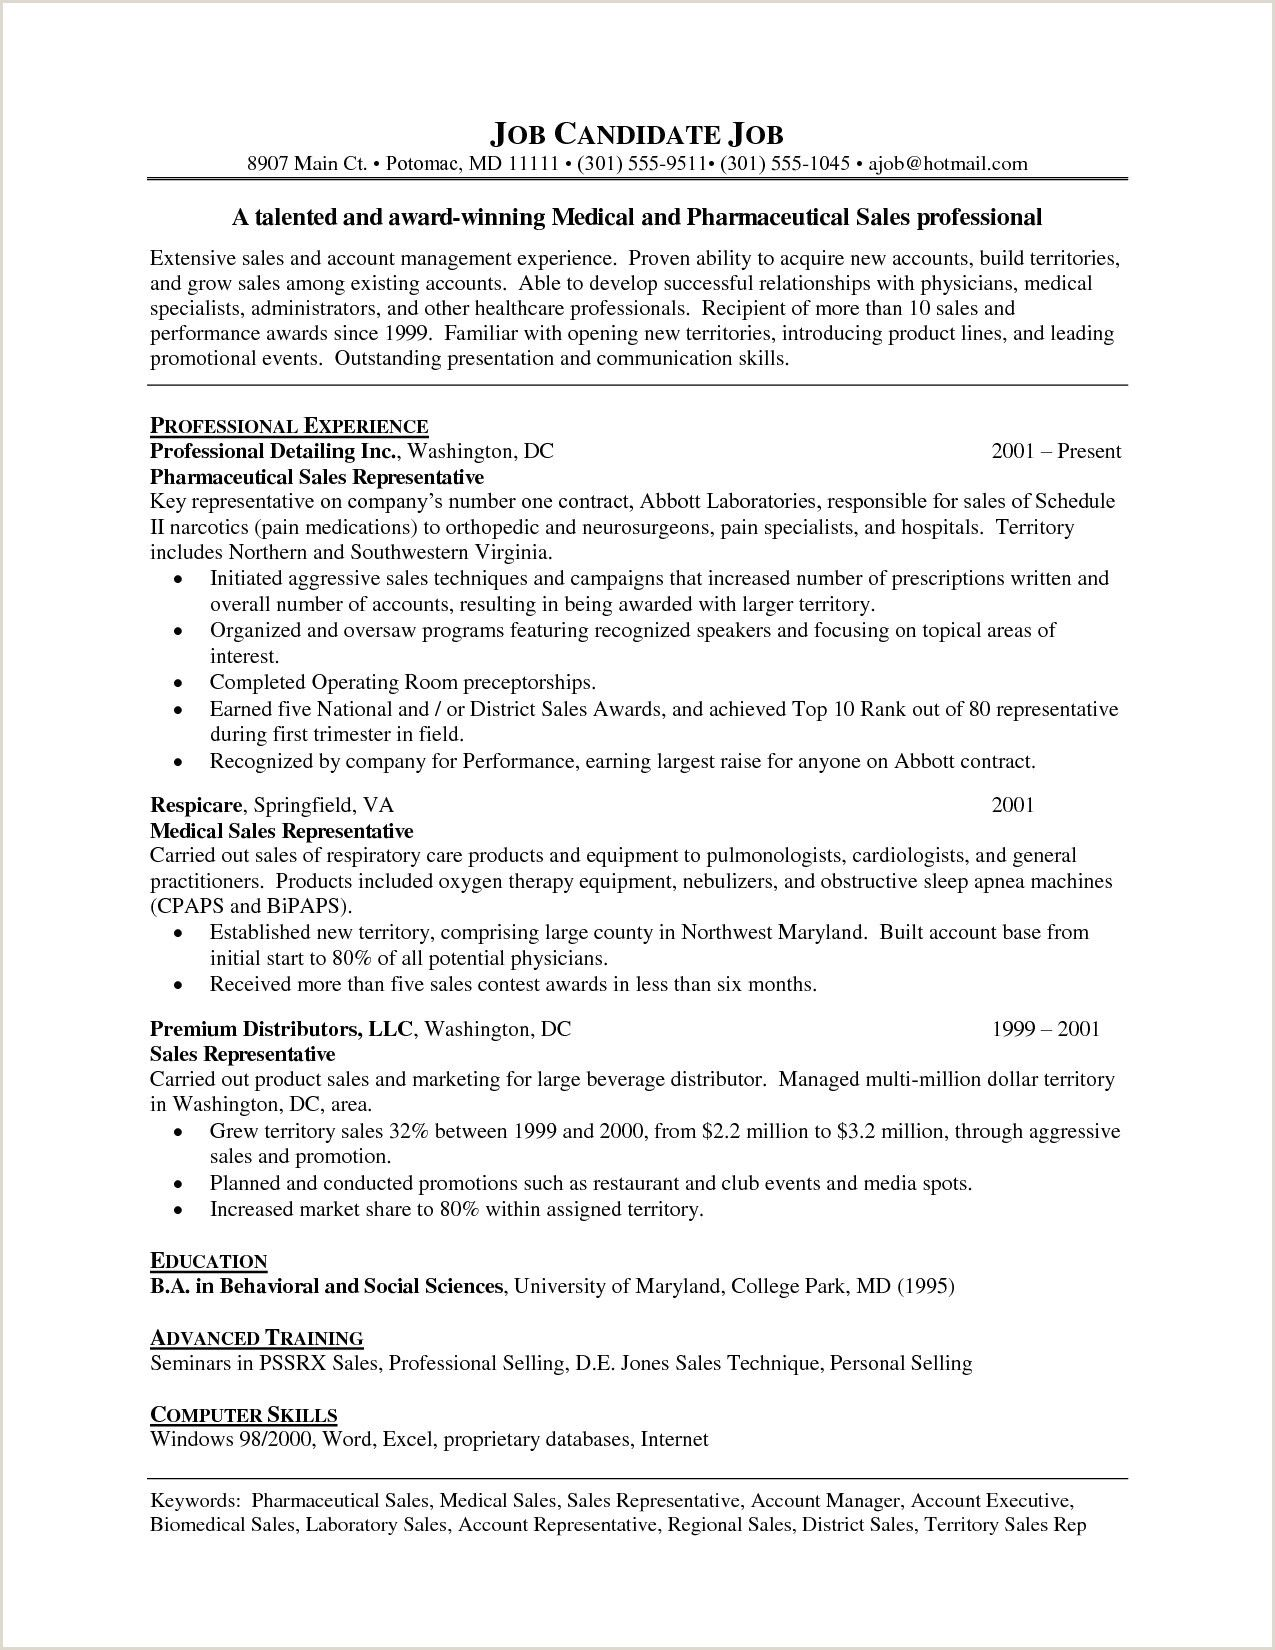 Cv Format For Pharmaceutical Job Cv Format For Pharmaceutical Job